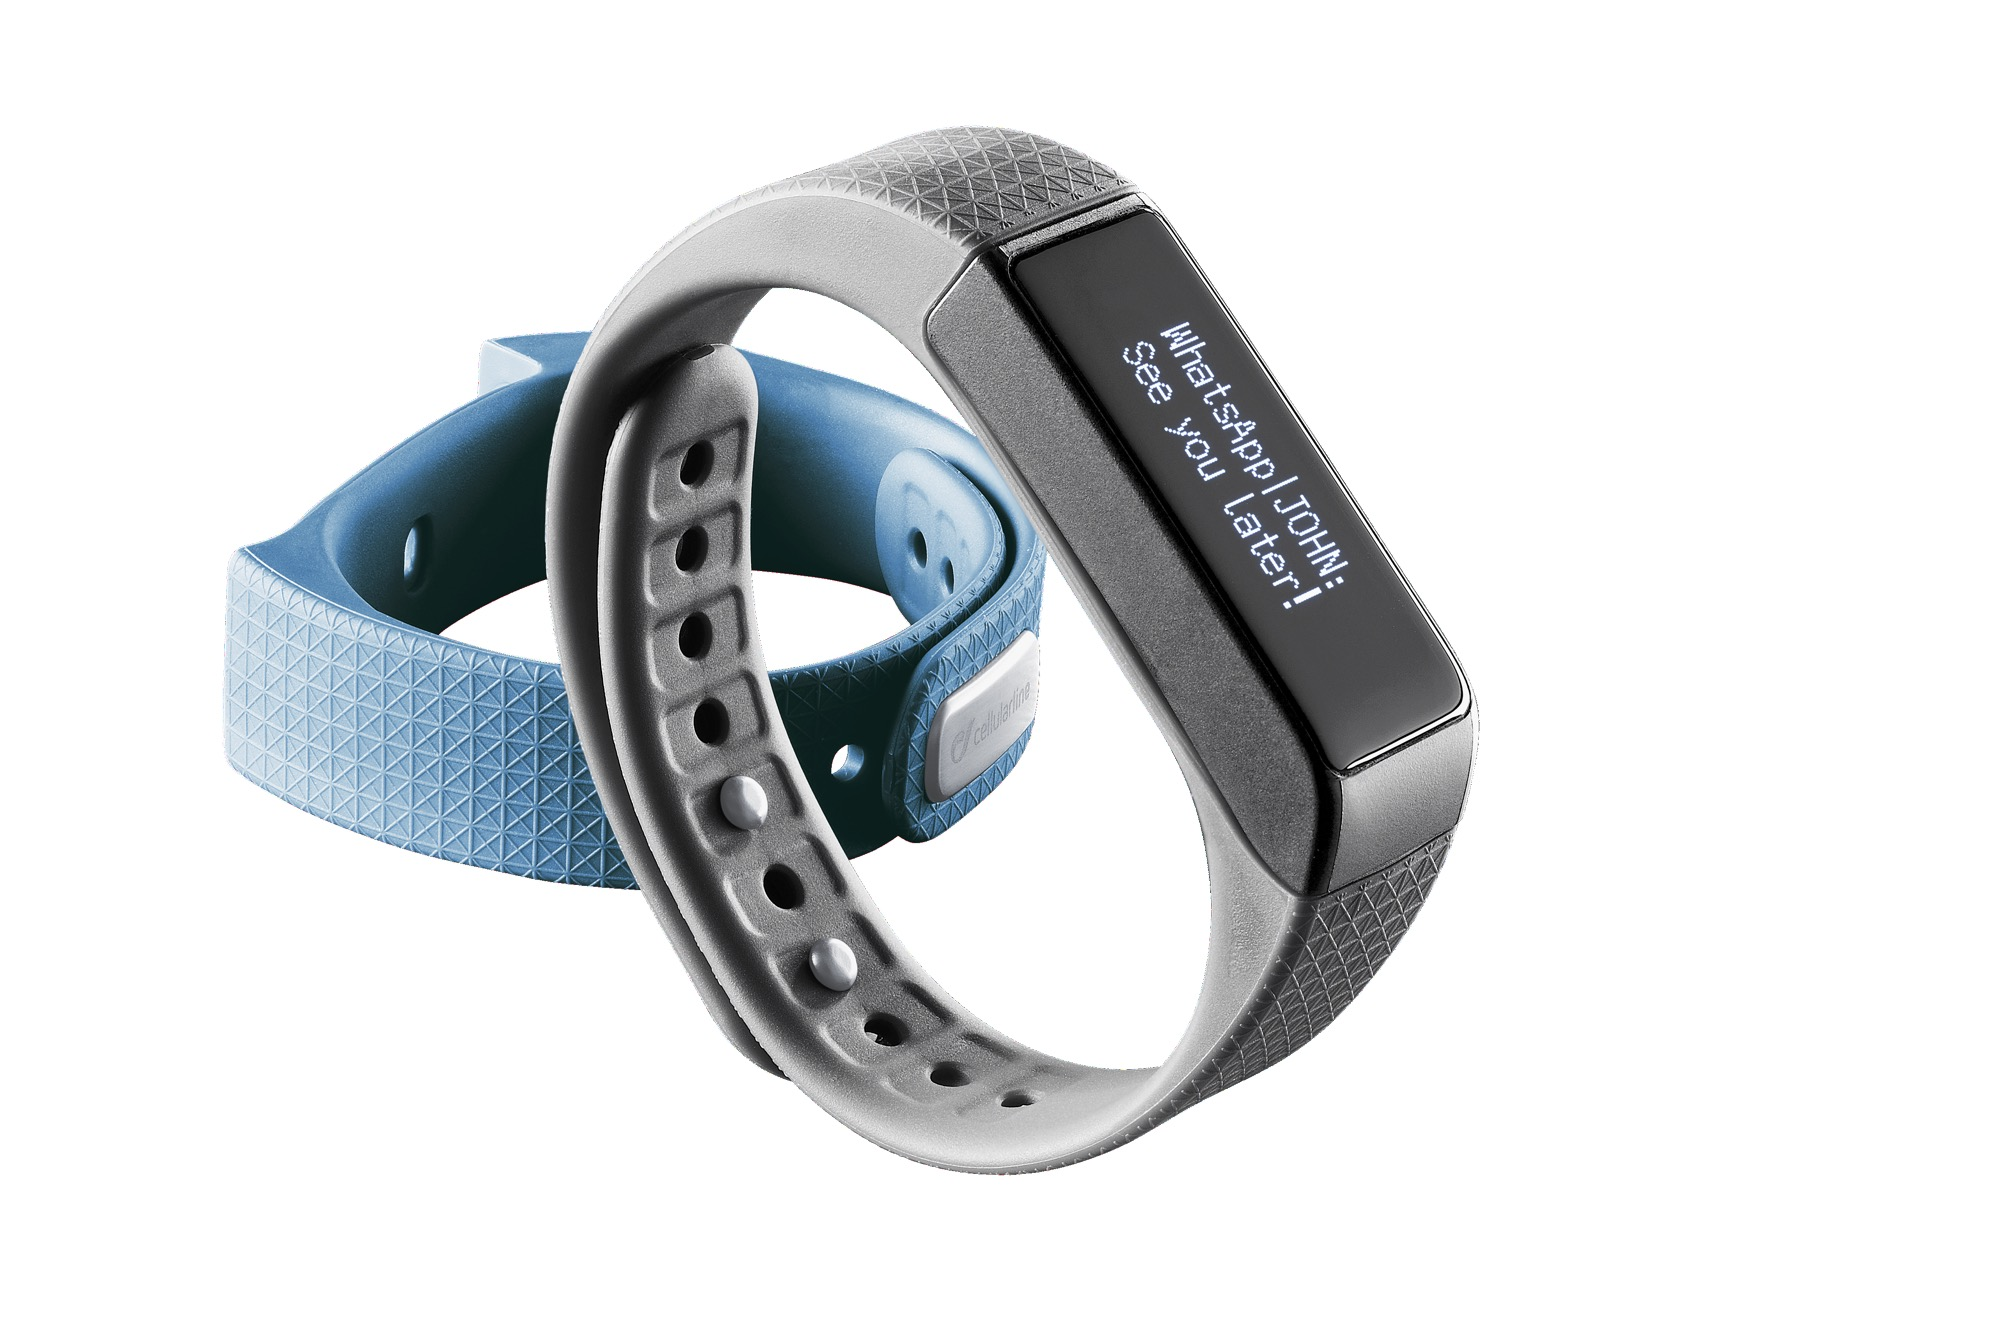 De Easy Touch fitness en activity tracker van Cellularline